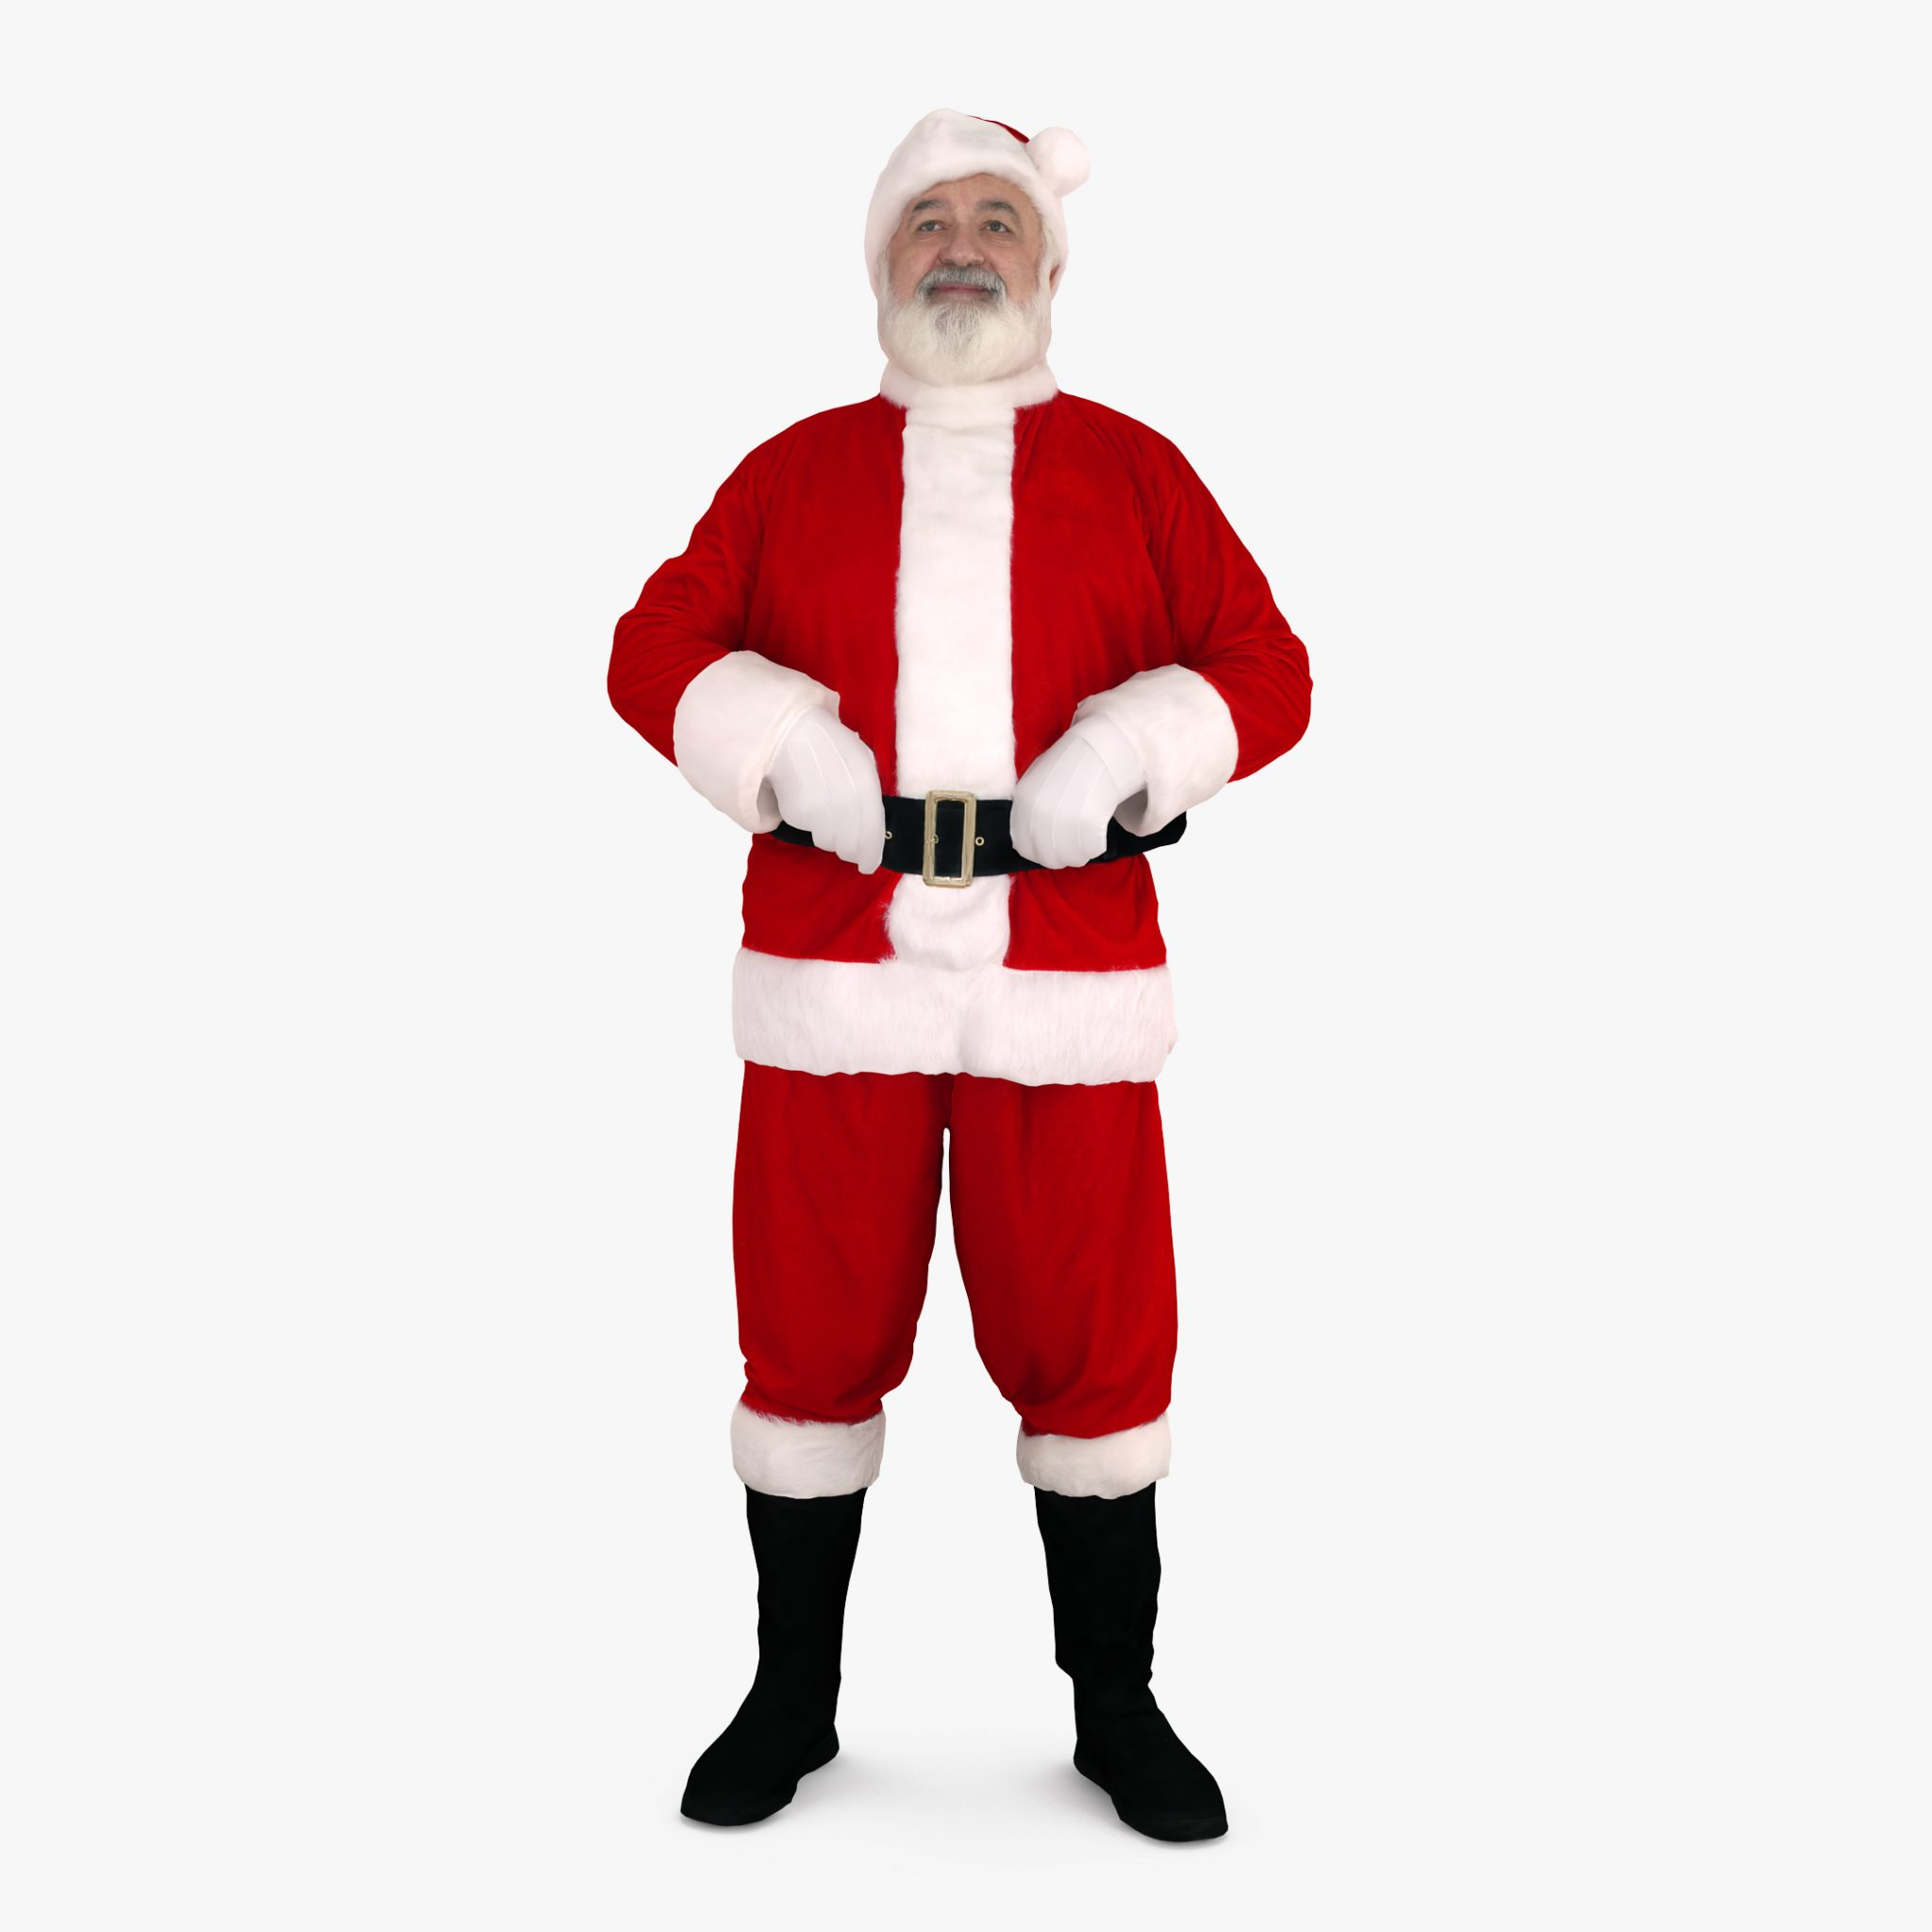 Santa Standing 3D Model | 3DTree Scanning Studio